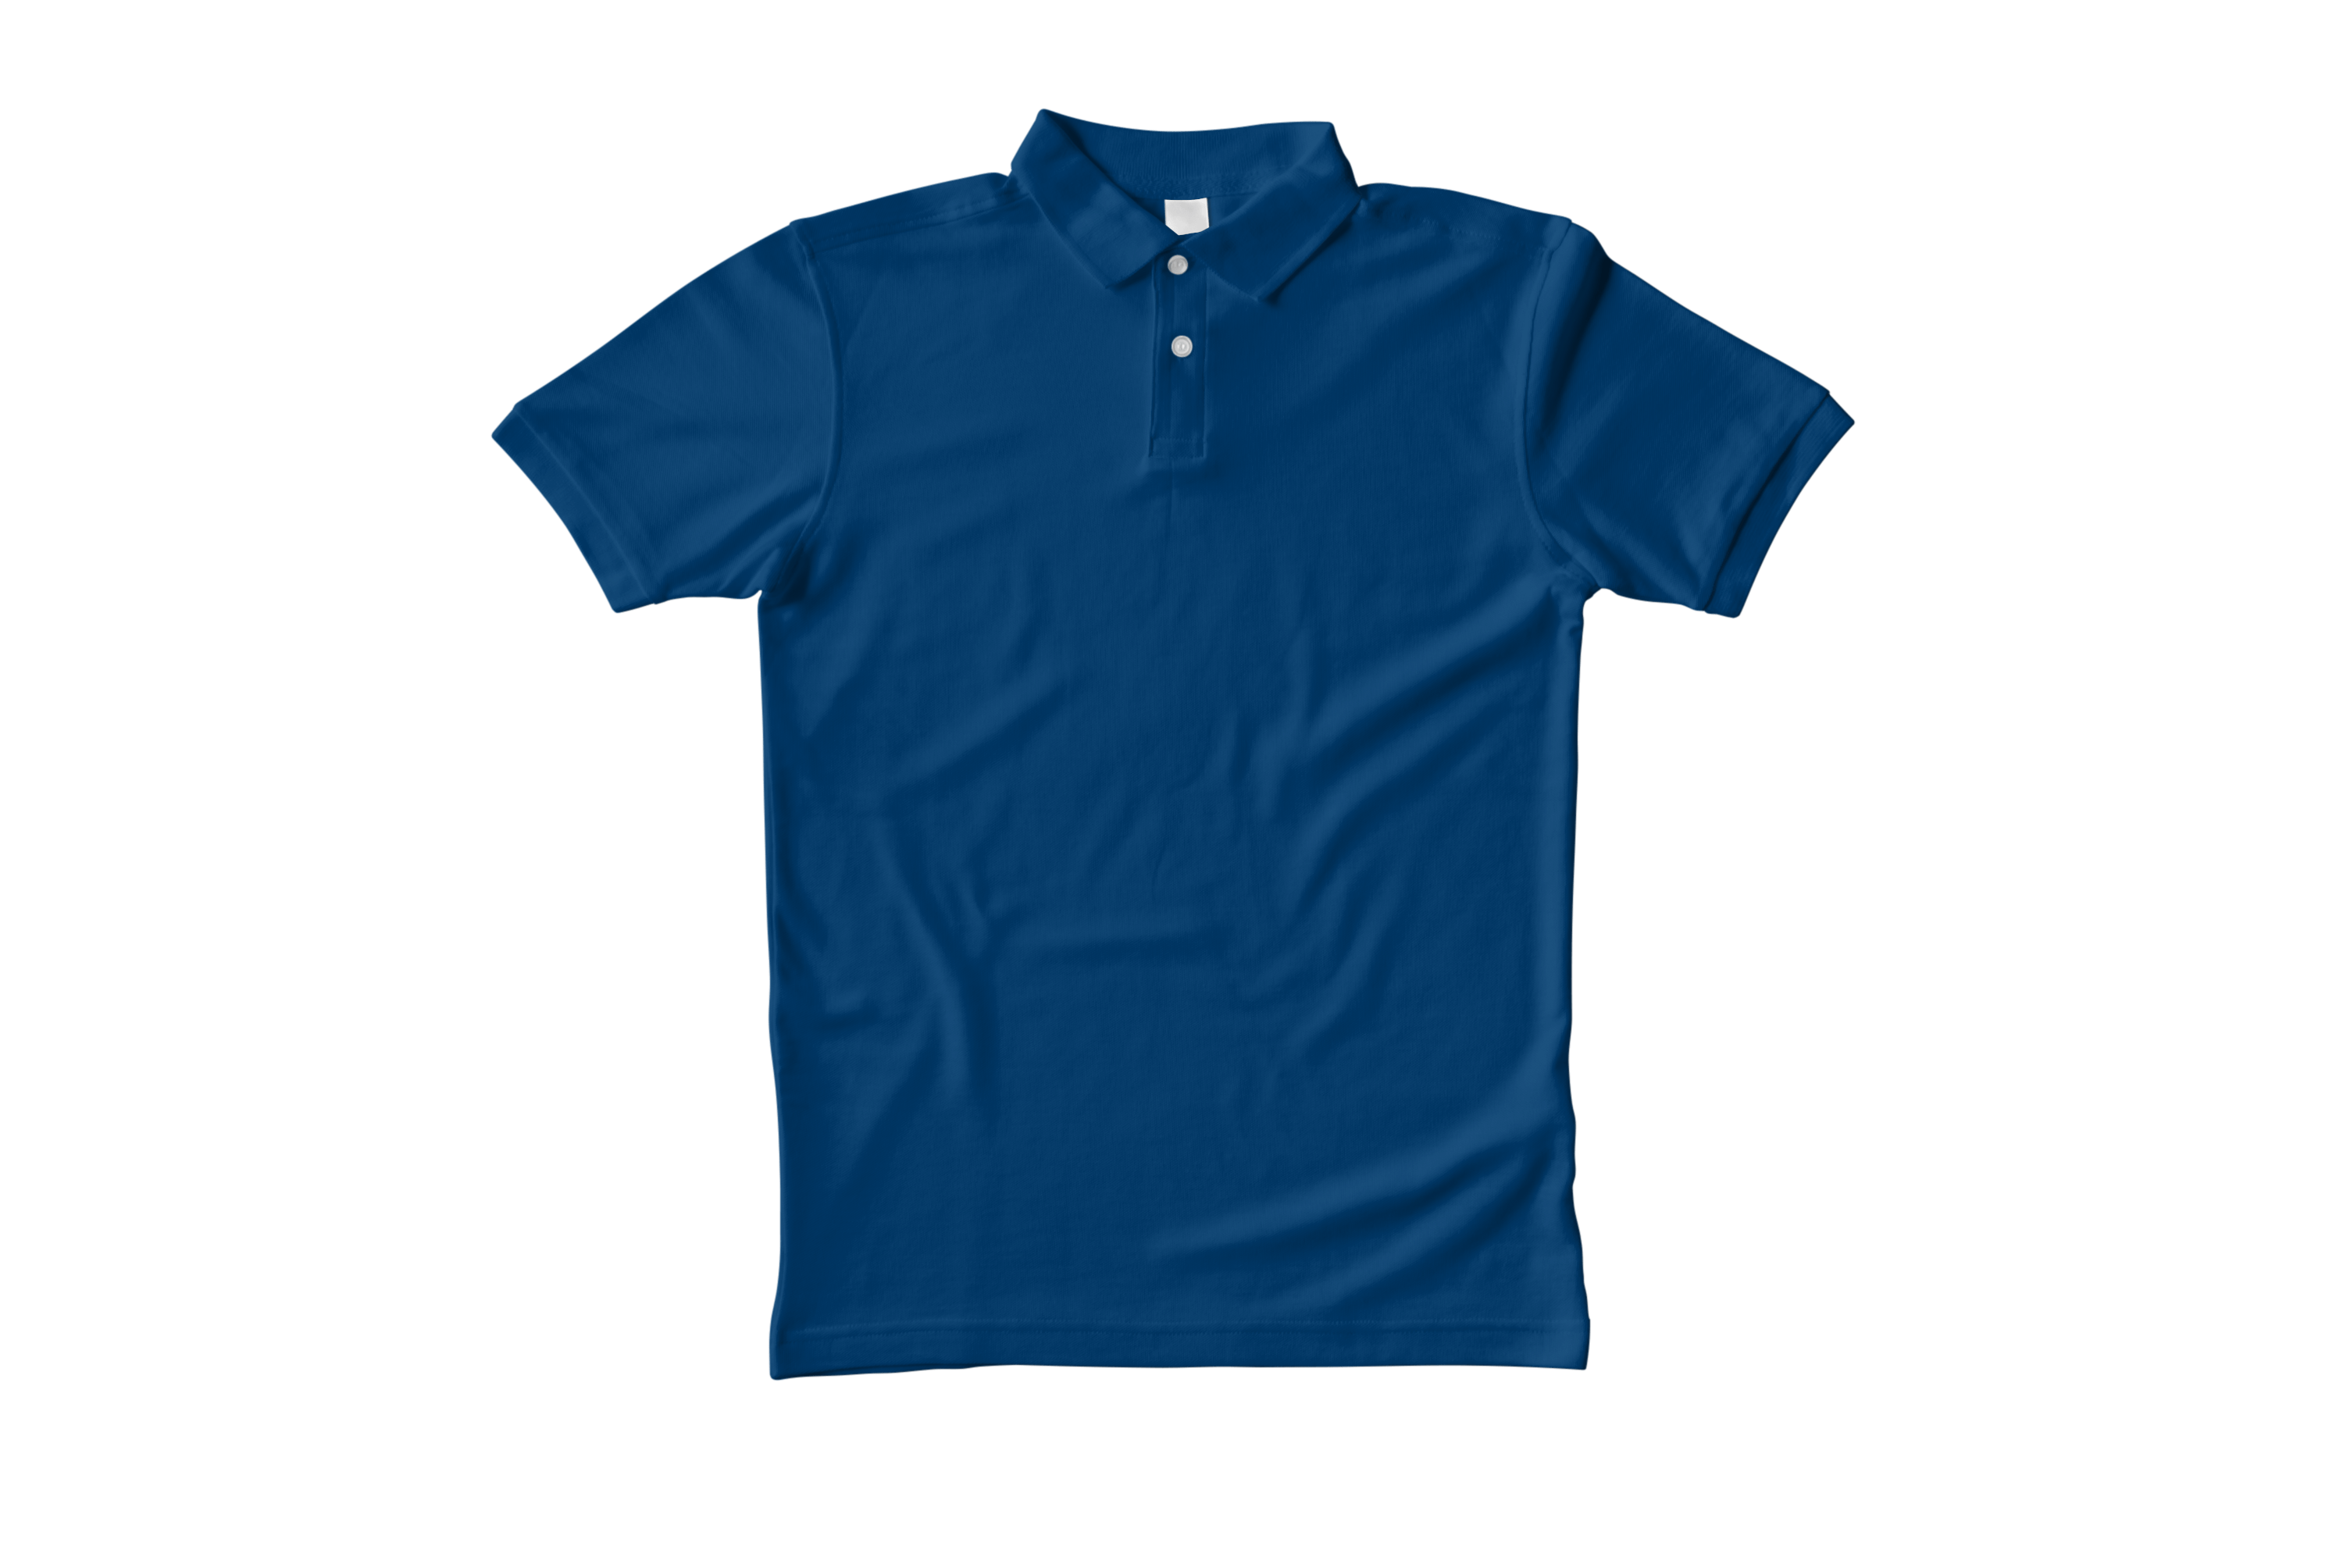 polo without logo 1 - Corporate Apparel